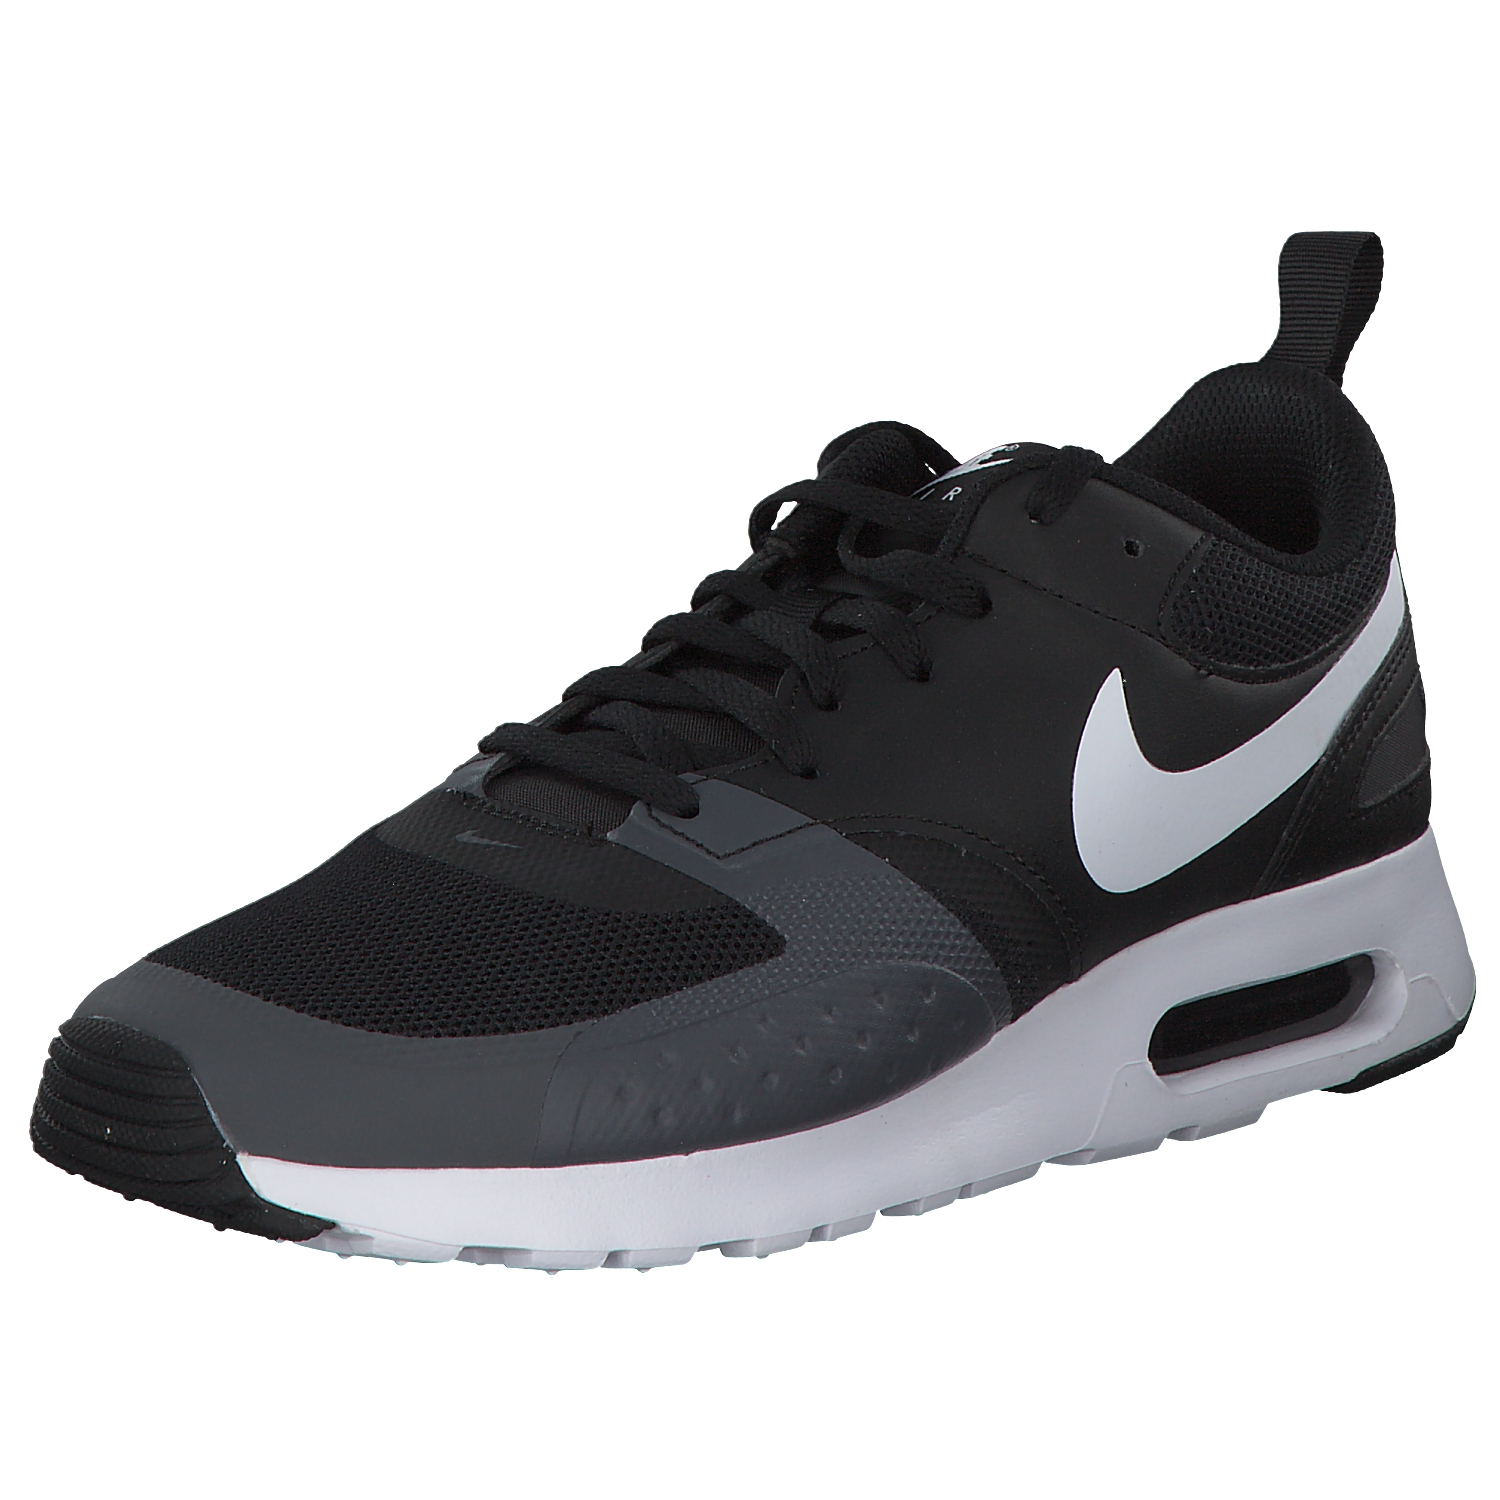 835e0a8d3f3 Nike air max vision mens sneakers running shoes black new jpg 1500x1500 Vision  shoes